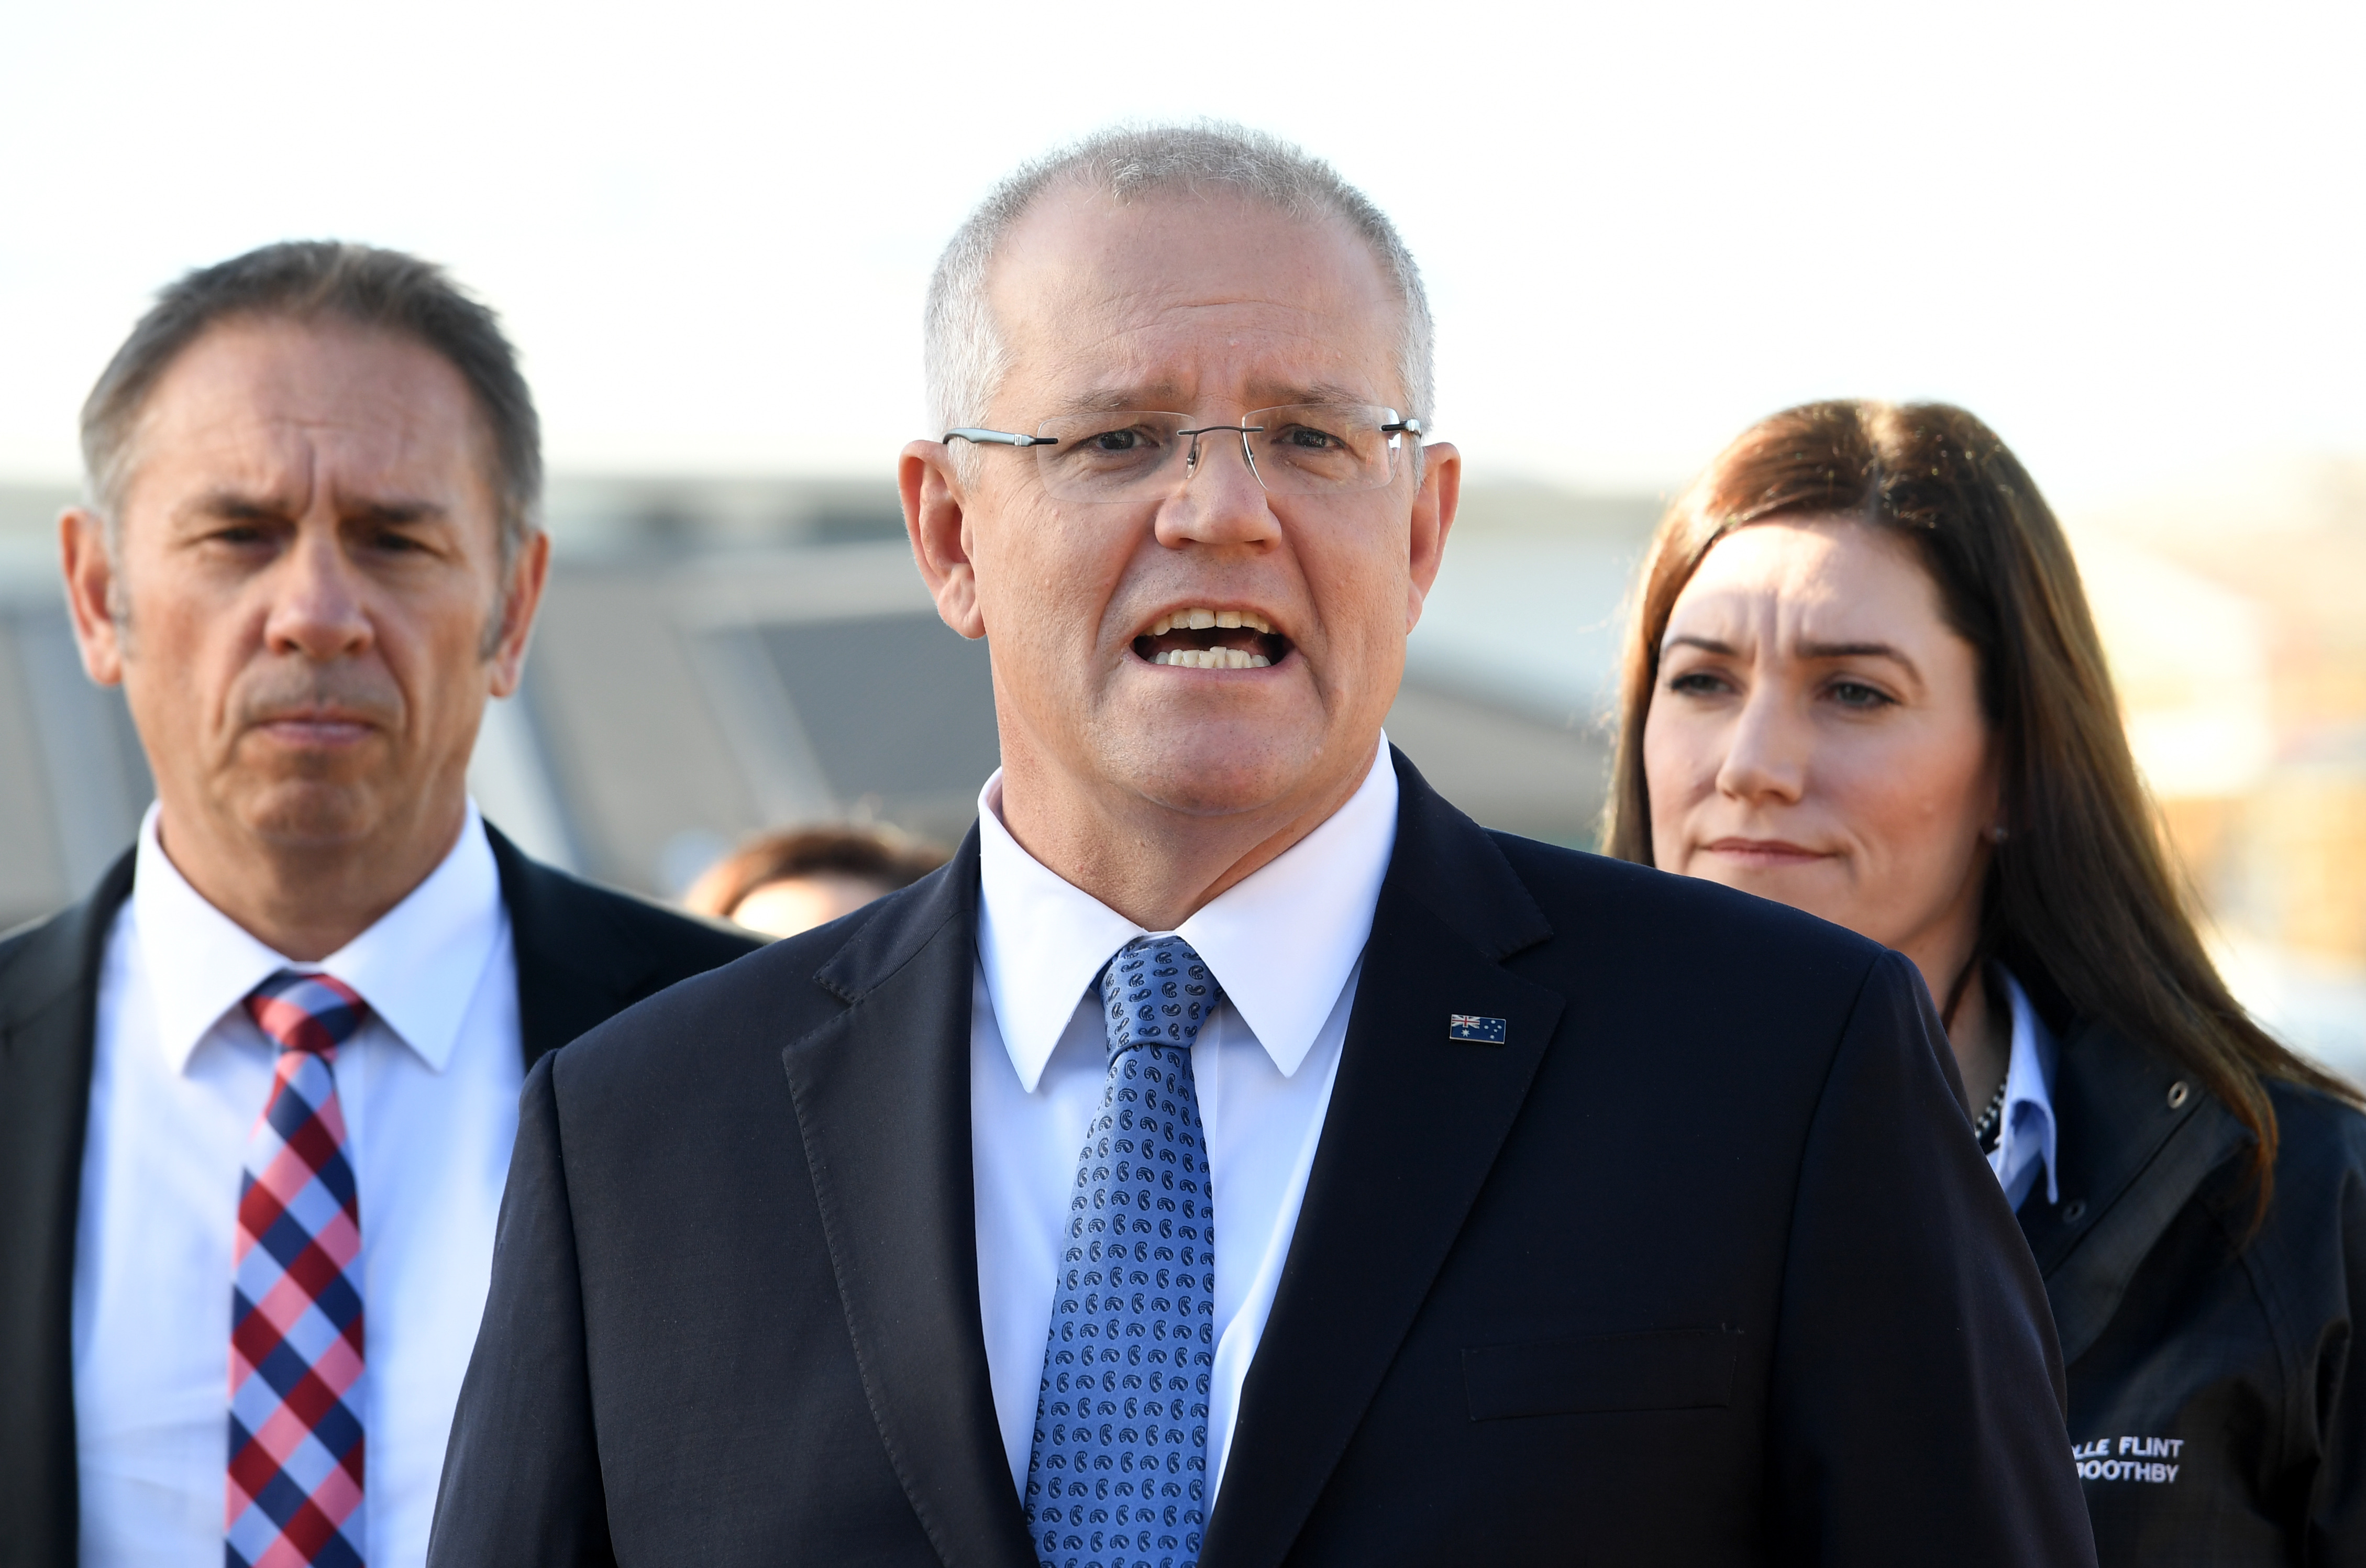 Prime Minister Scott Morrison Campaigns In Key Electorates As Election Day Nears